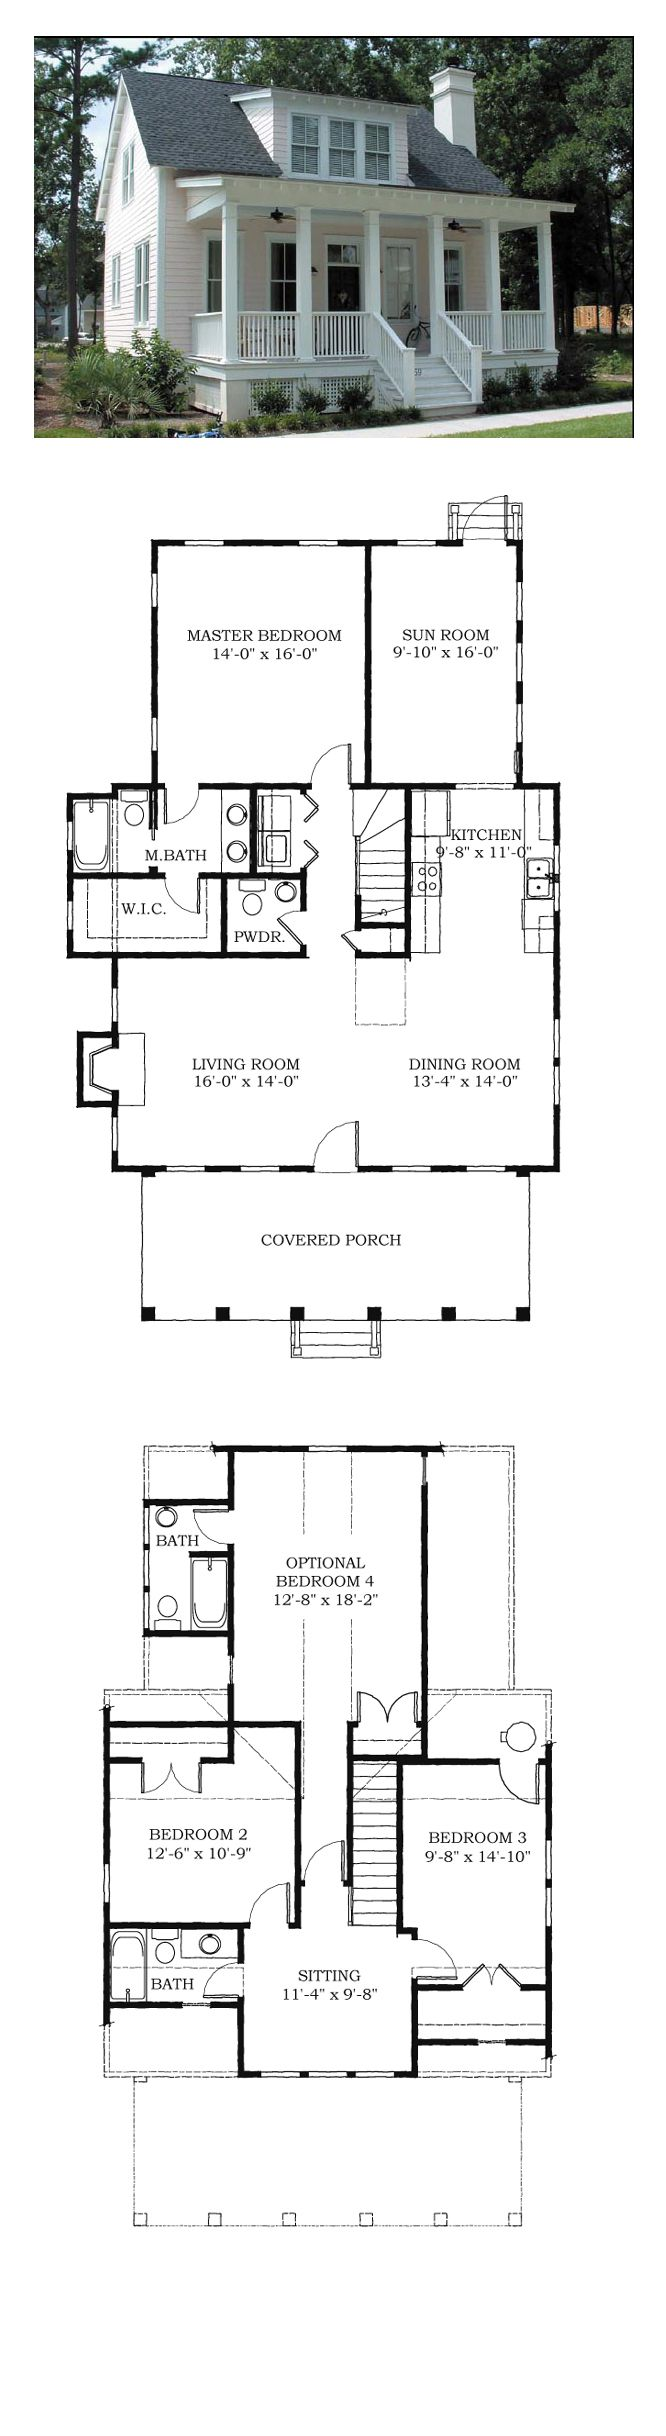 best 20 small farmhouse plans ideas on pinterest small home cool house plan id chp 38703 total living area 1783 sq